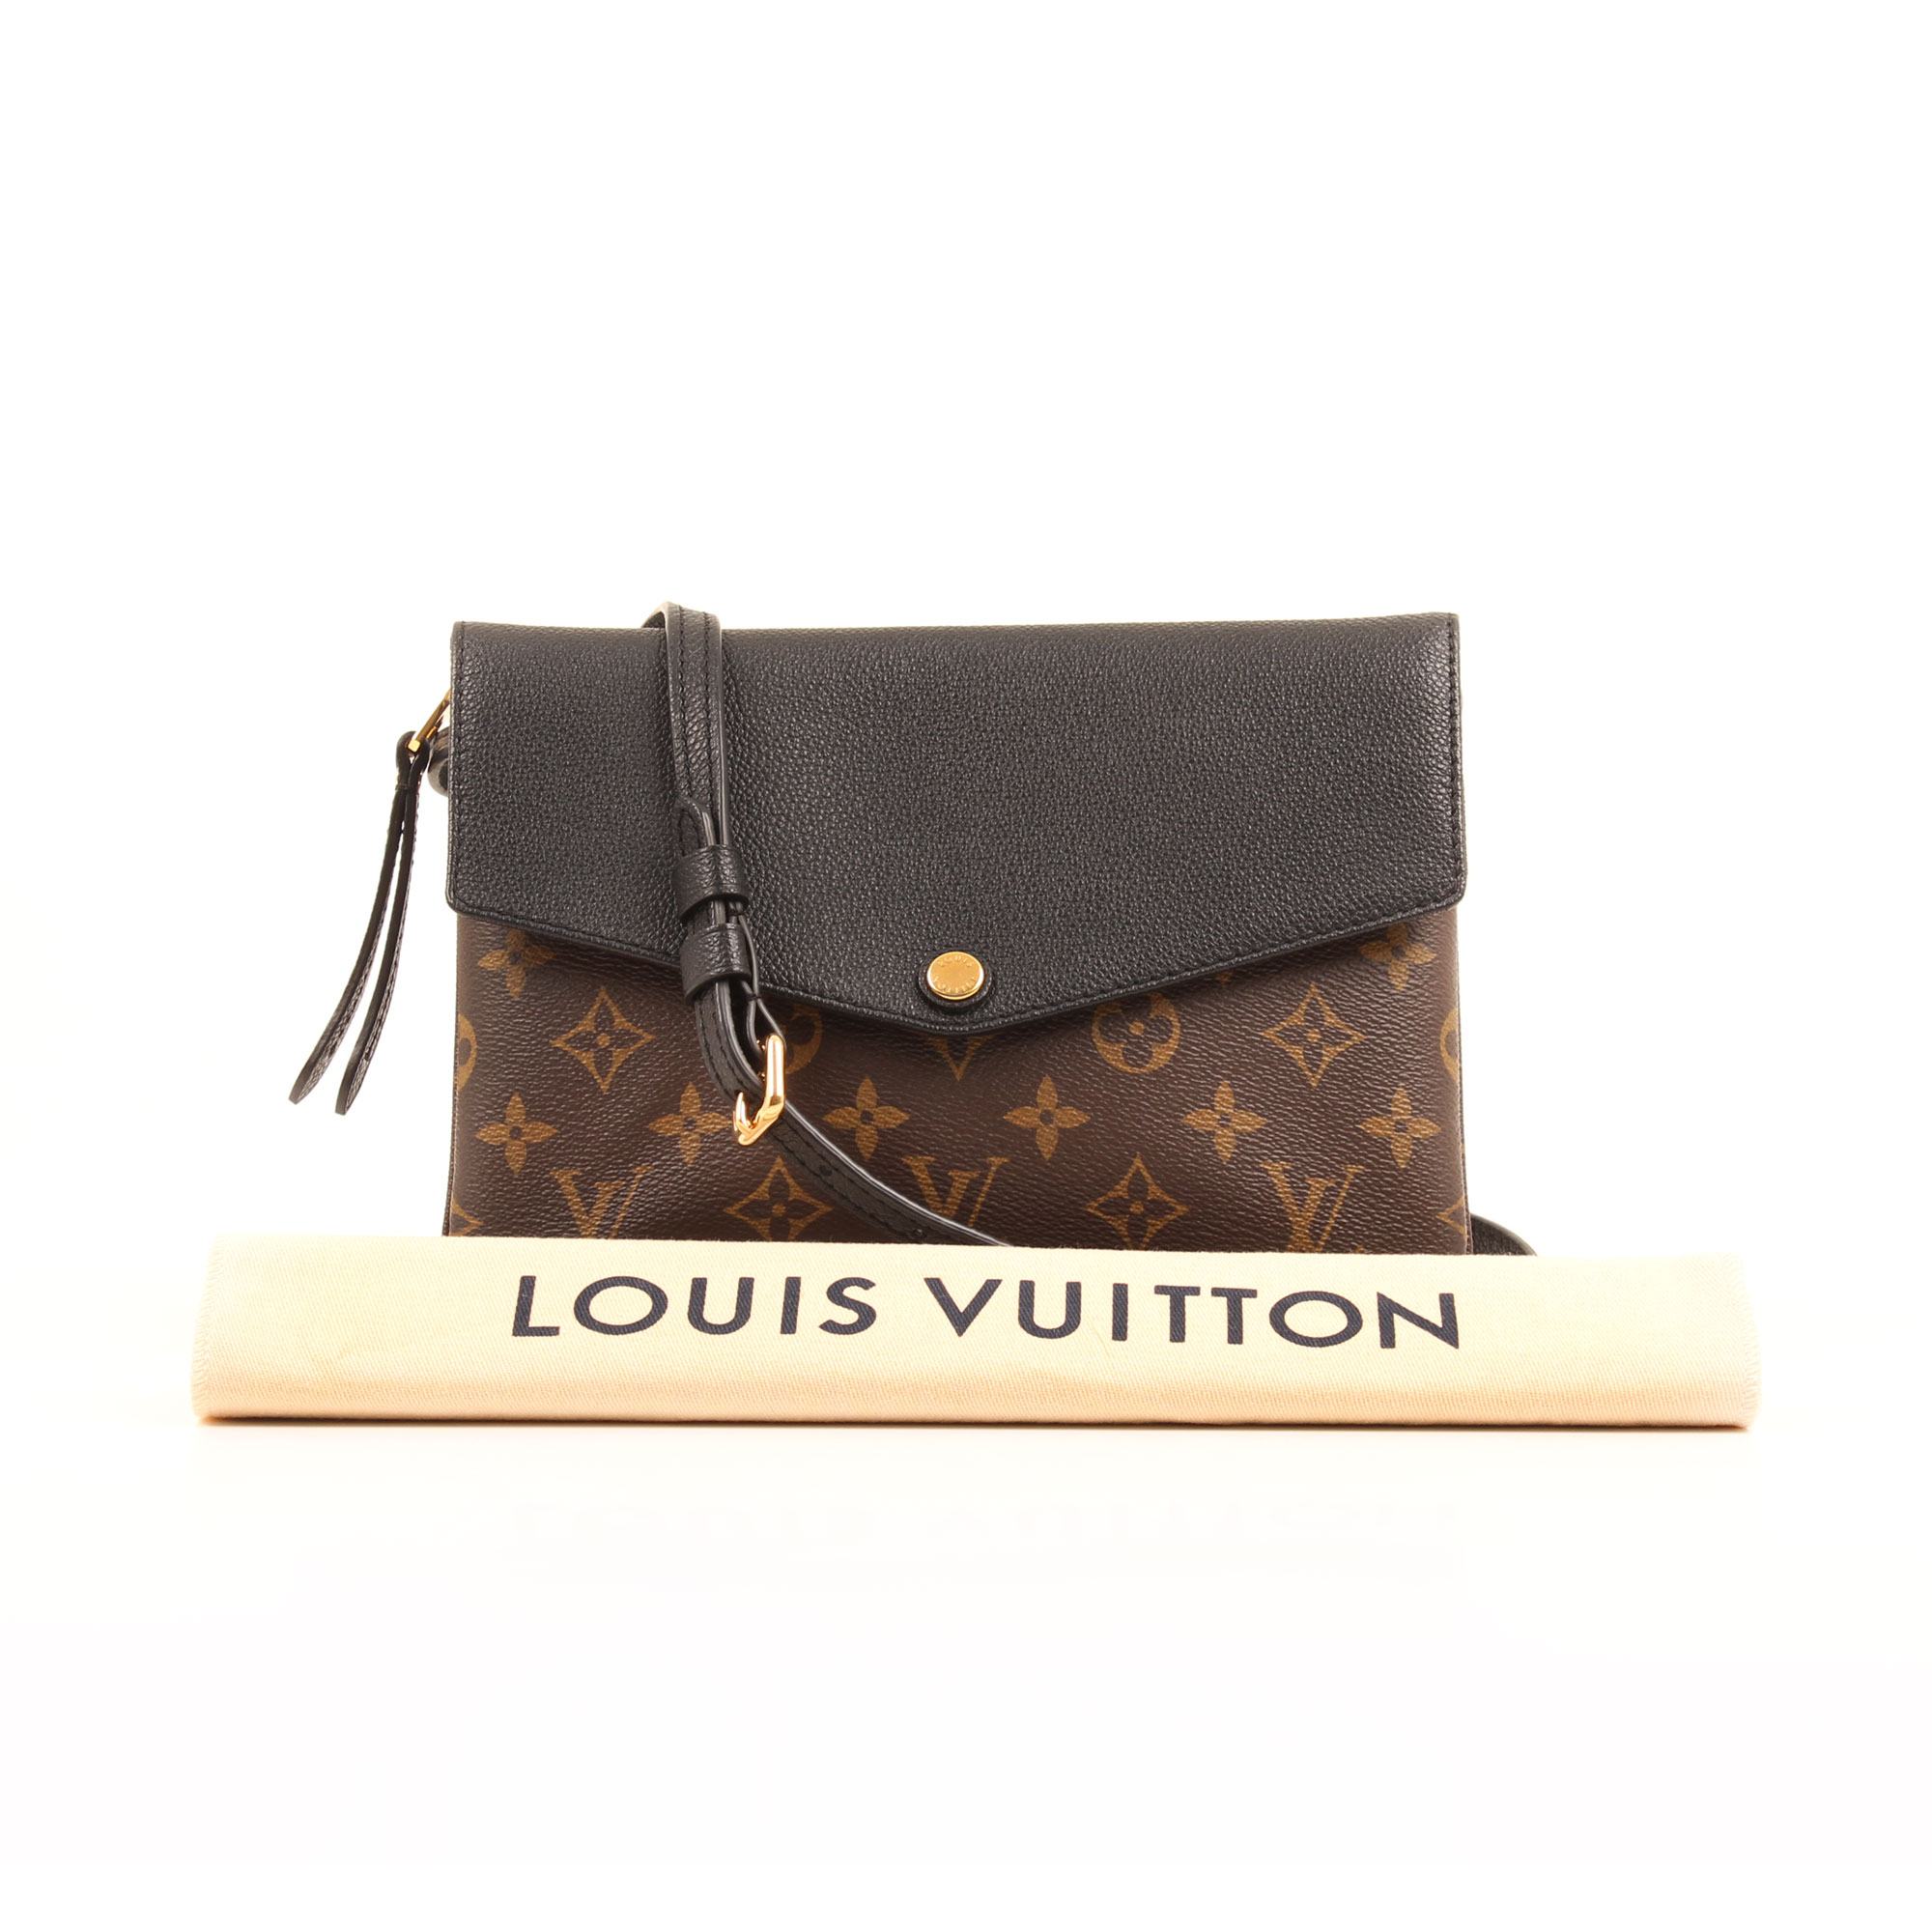 Imagen del dustbag del bolso louis vuitton twice bandolera monogram macassar